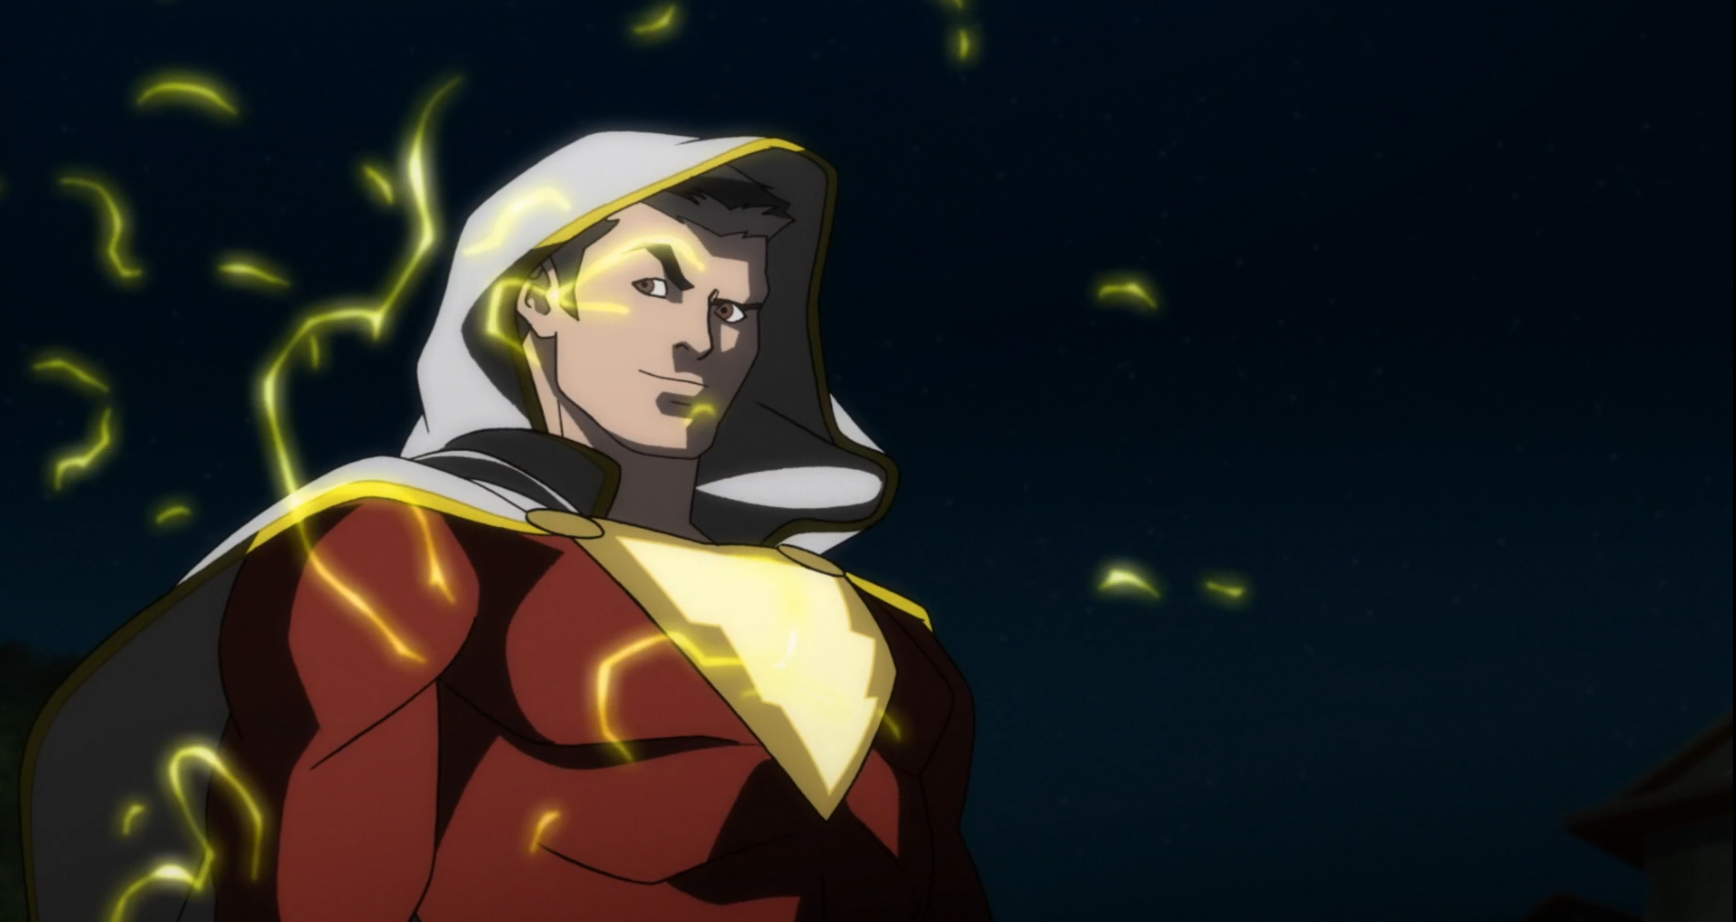 Justice League War Shazam - Hot Girls Wallpaper